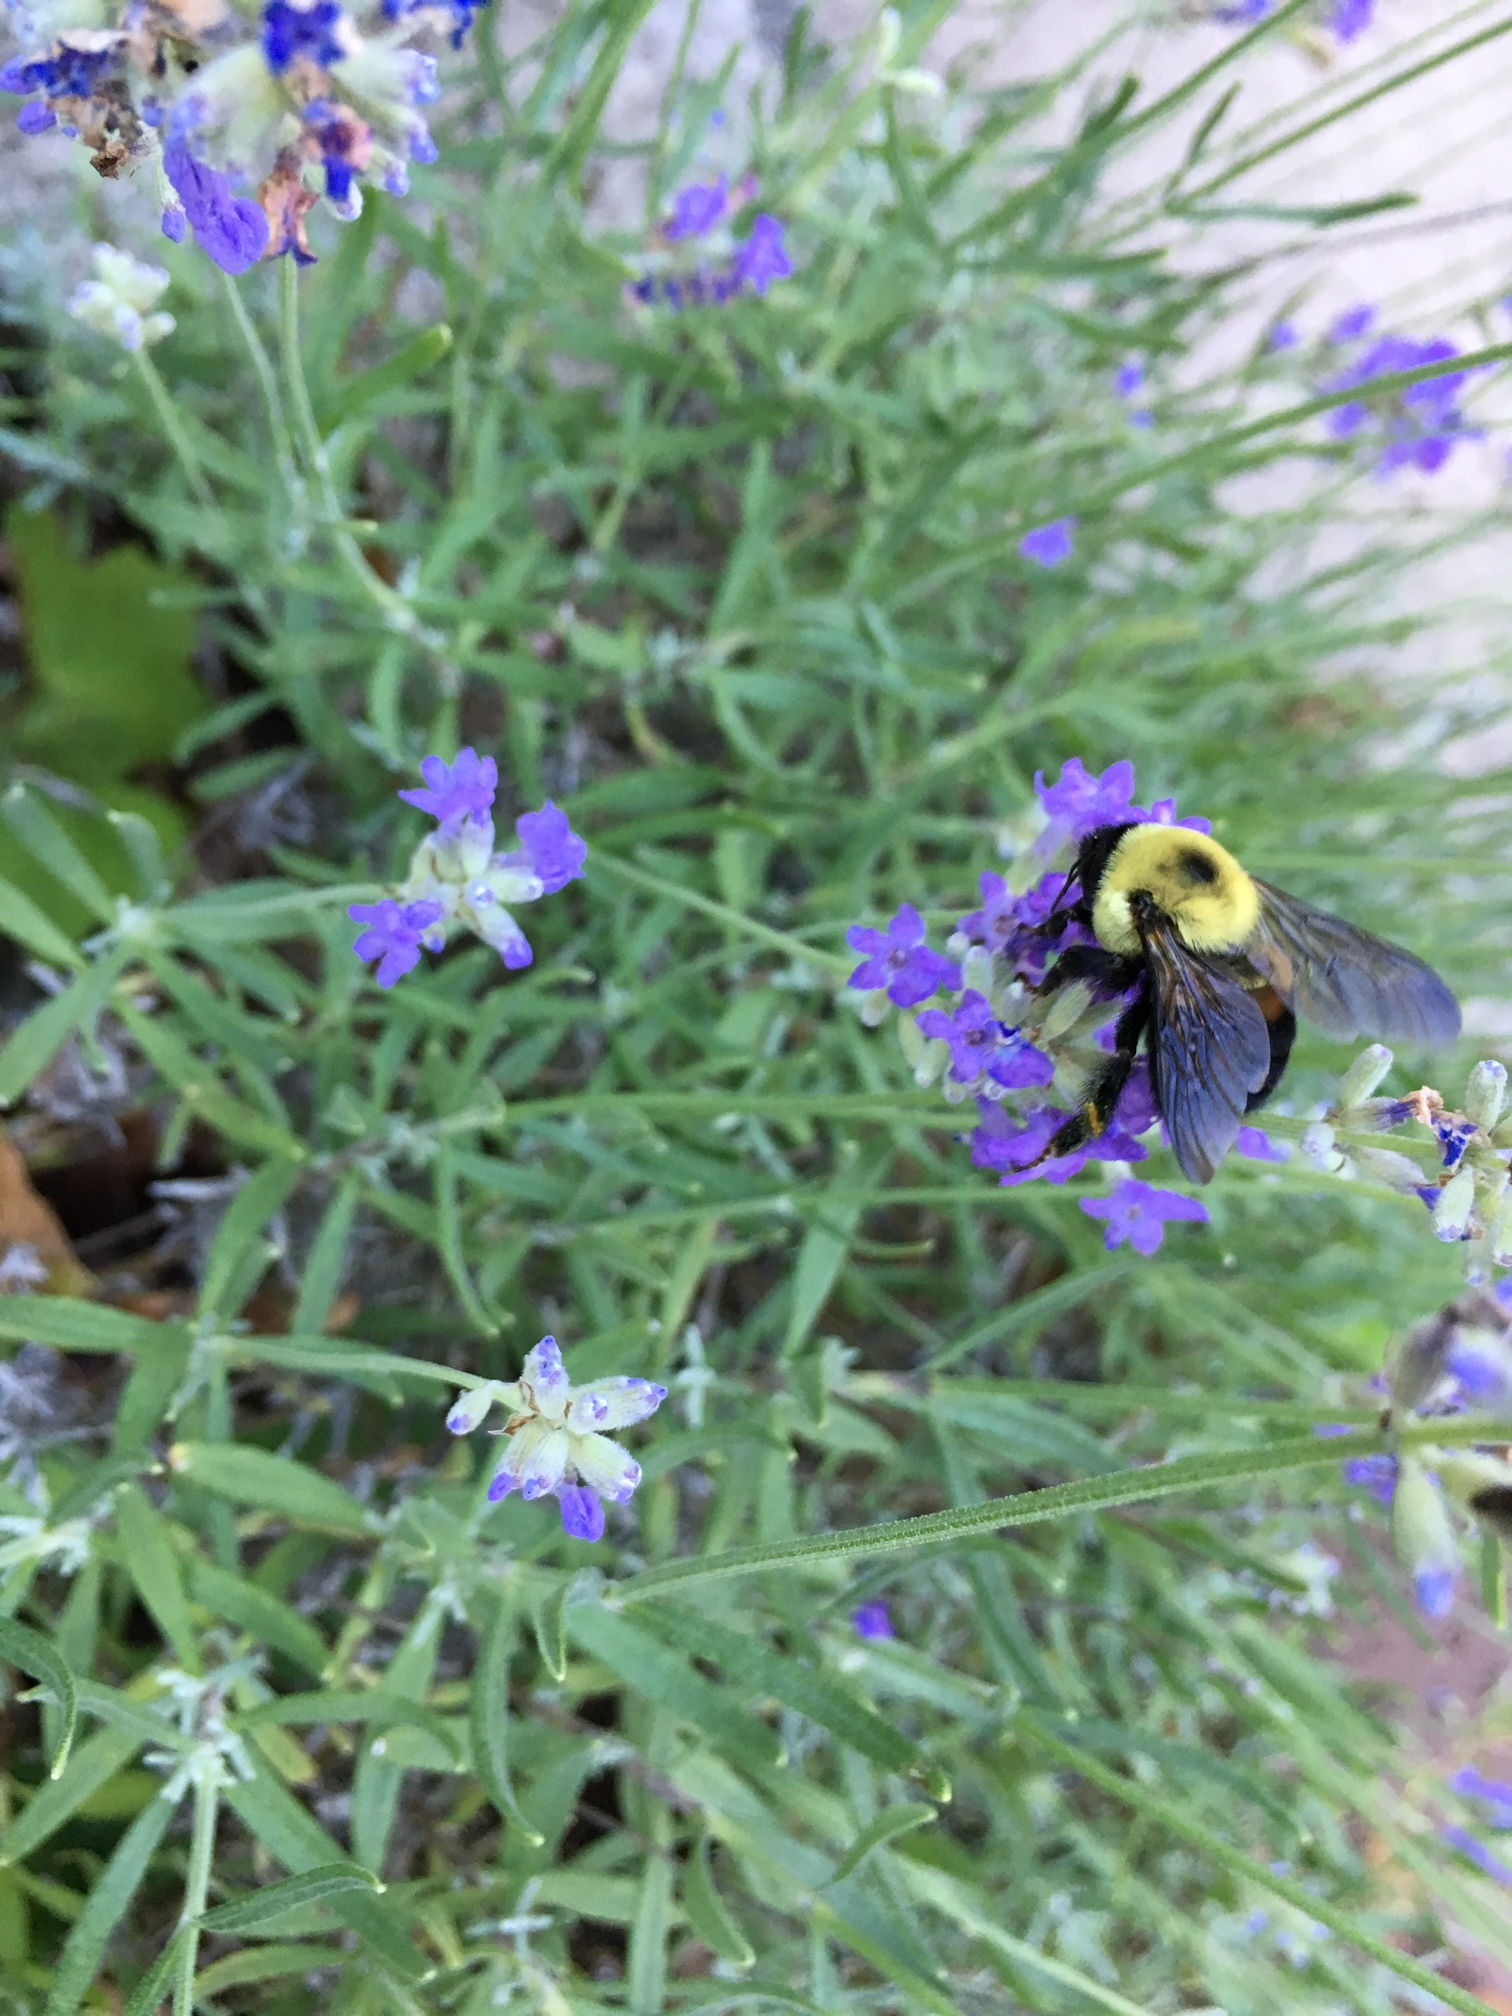 We didn't plan(t) well for pollinaters this year, but the bees loved our little lavender.